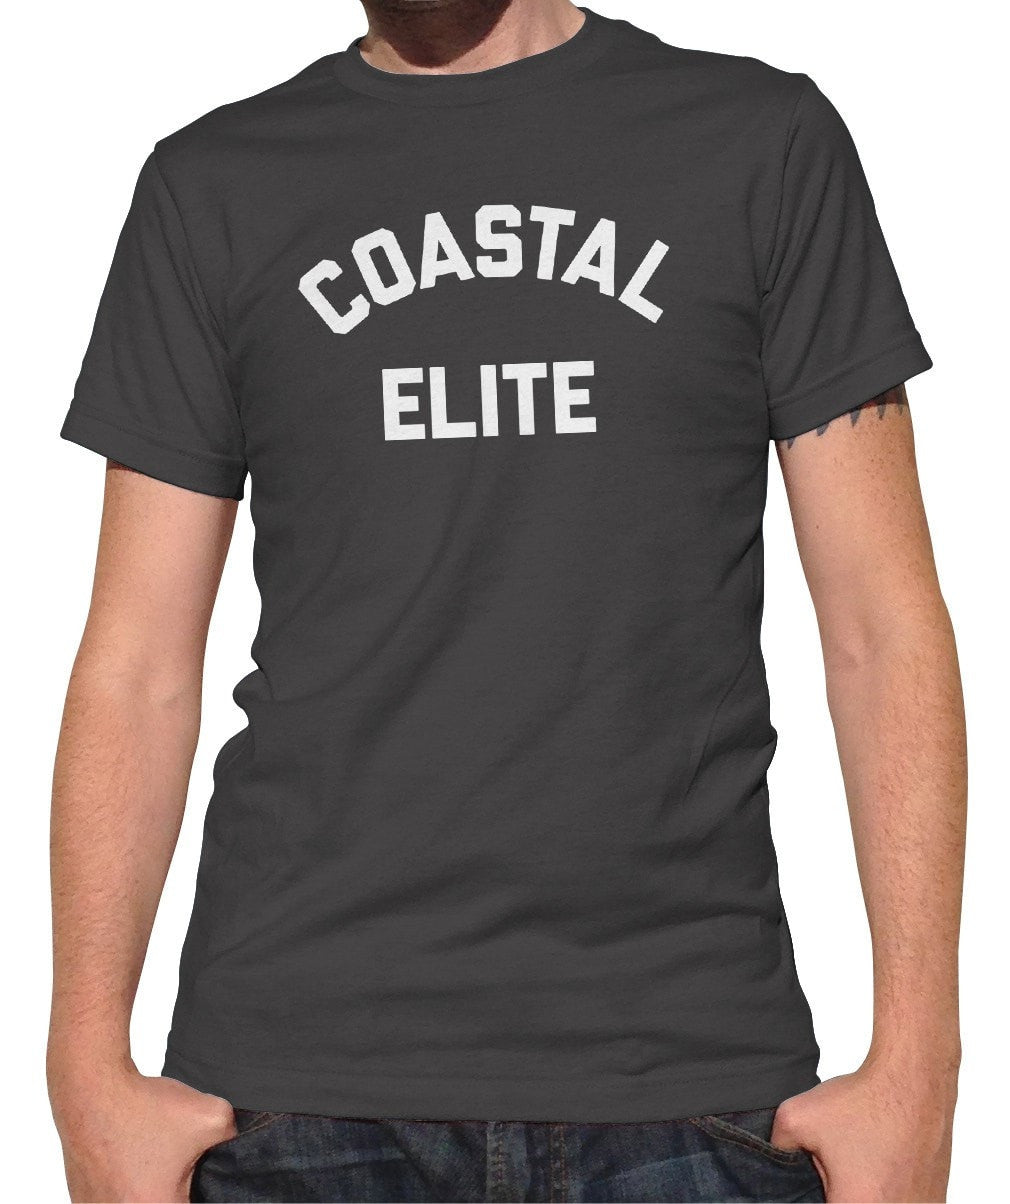 Men's Coastal Elite T-Shirt